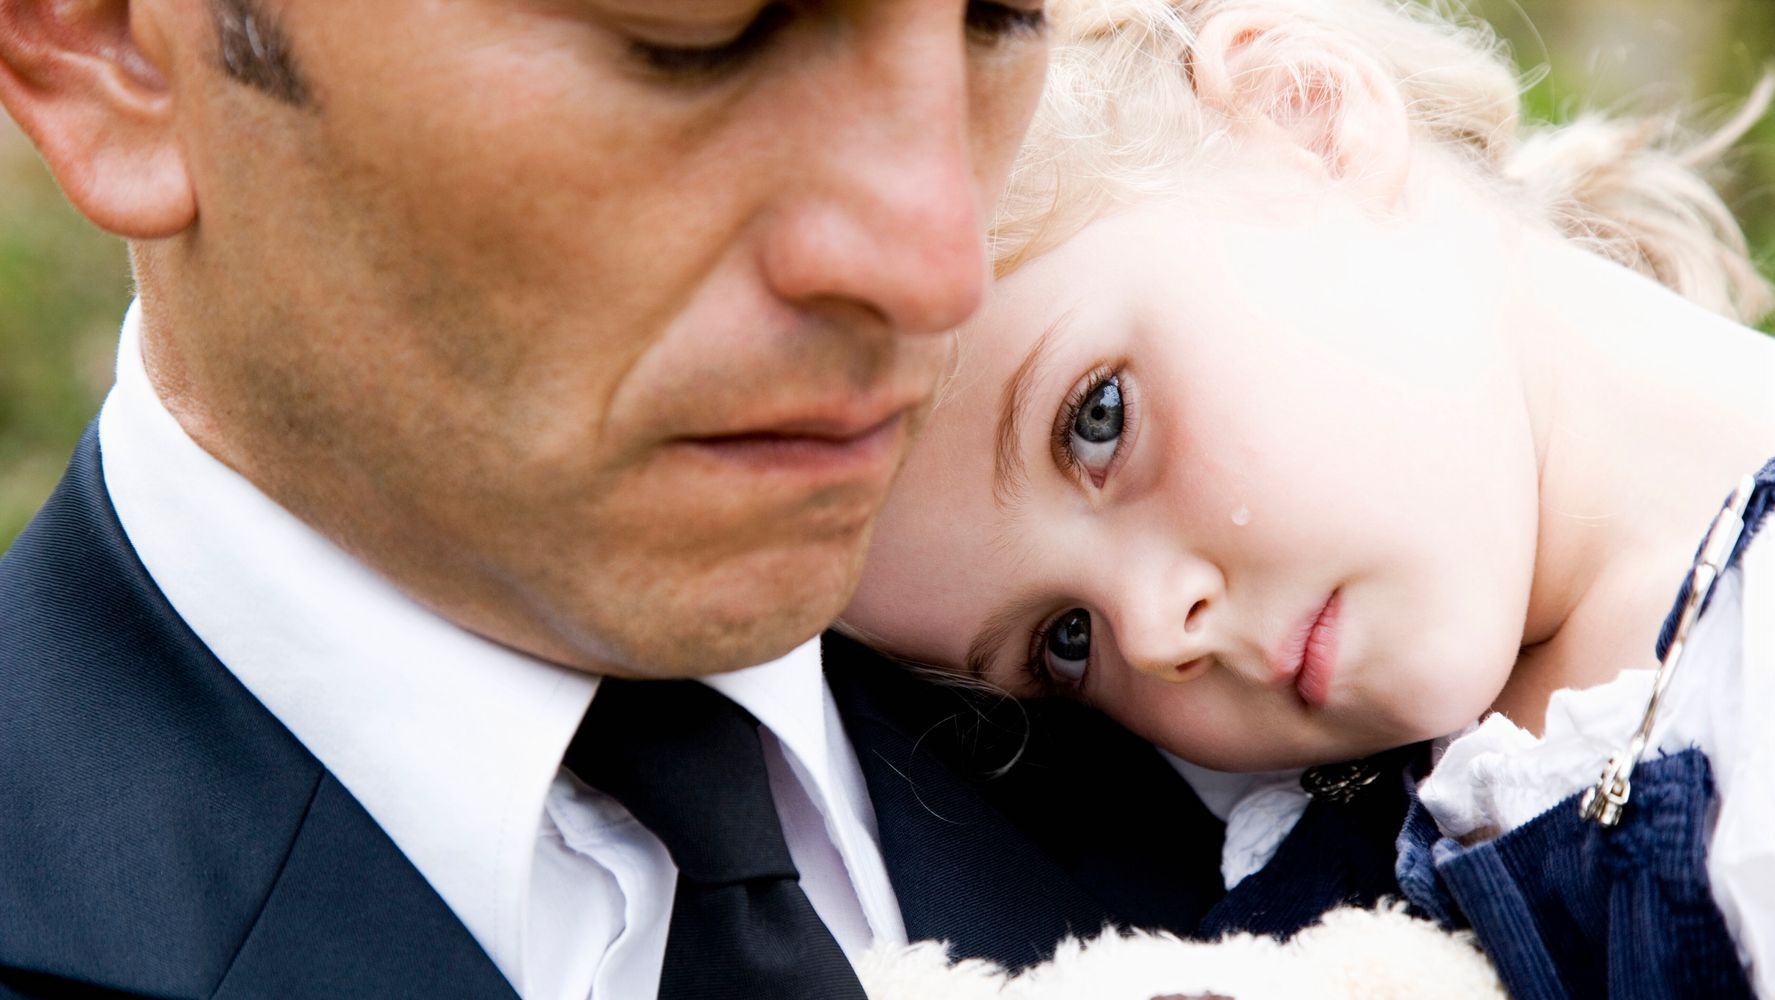 Here's How To Help Your Child Say Goodbye To A Loved One At A Funeral